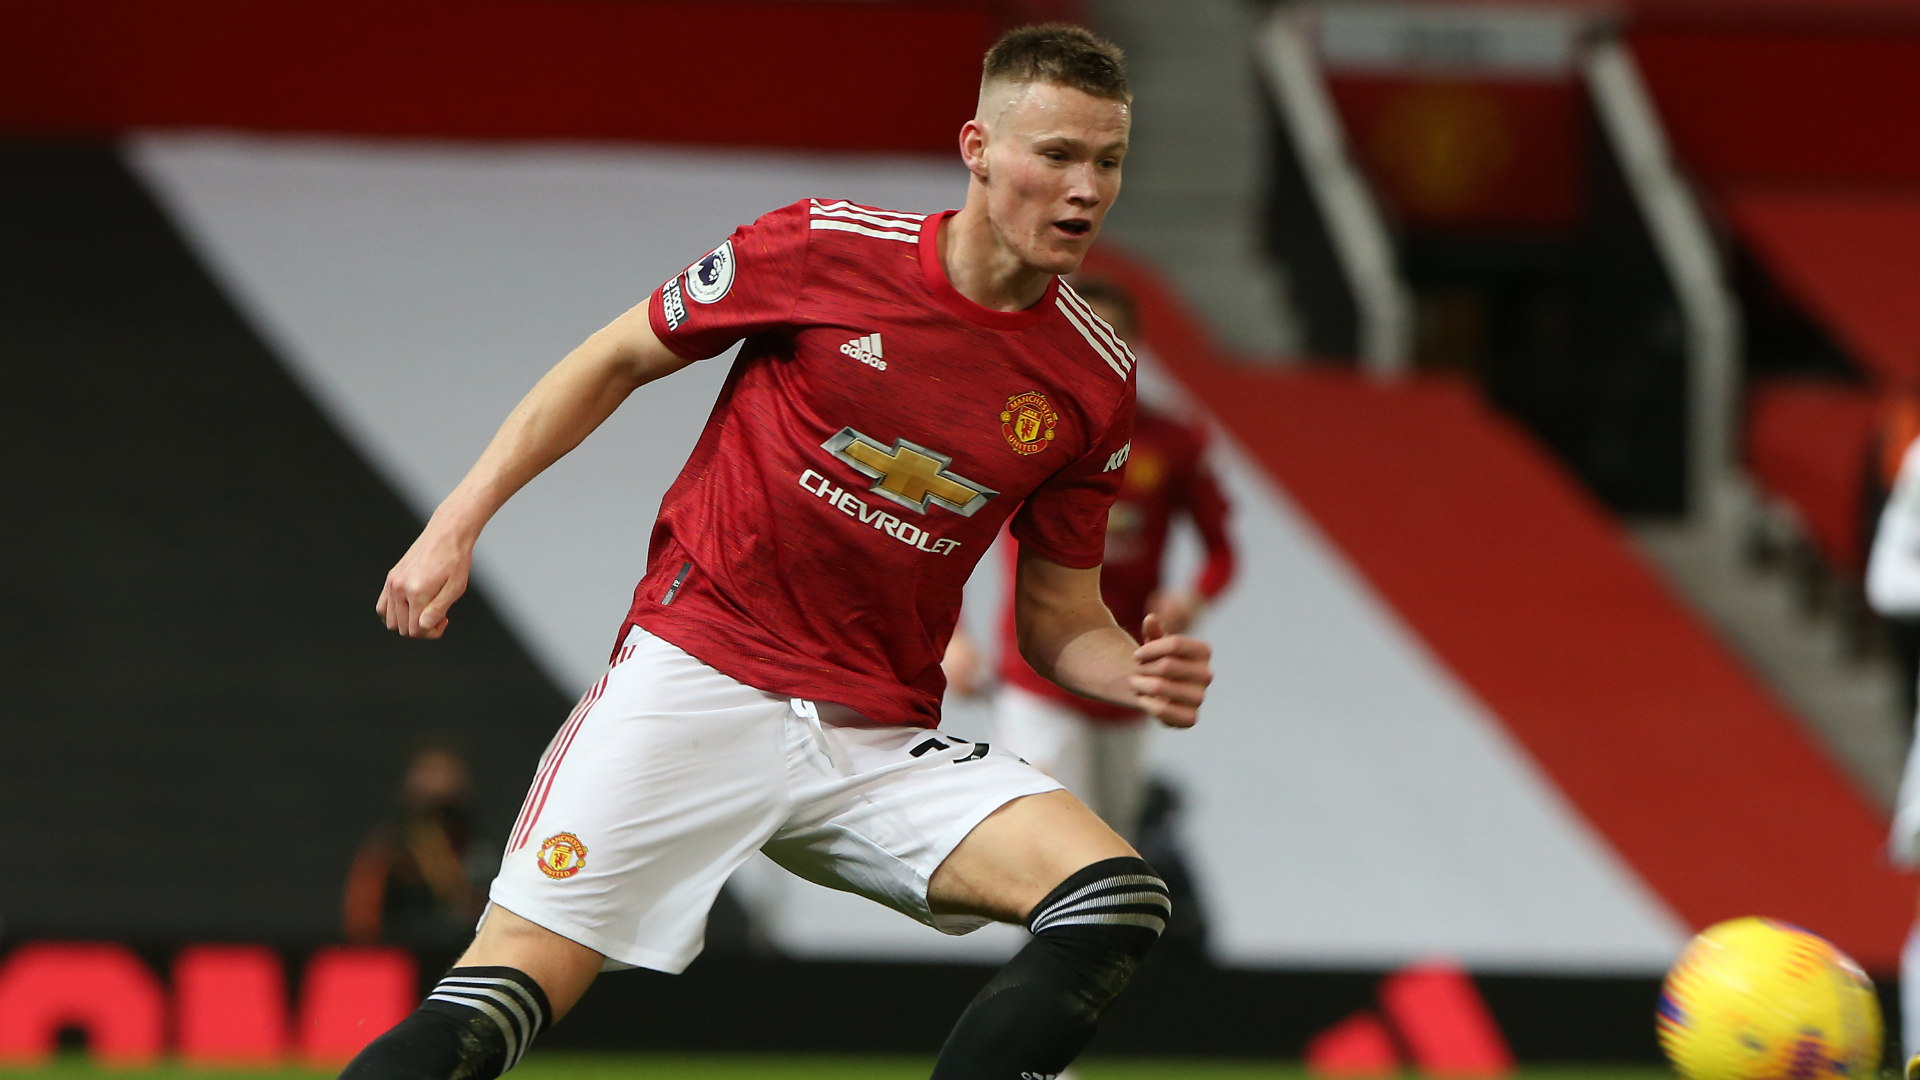 Man Utd pair McTominay and Wan-Bissaka ruled out of Everton tie